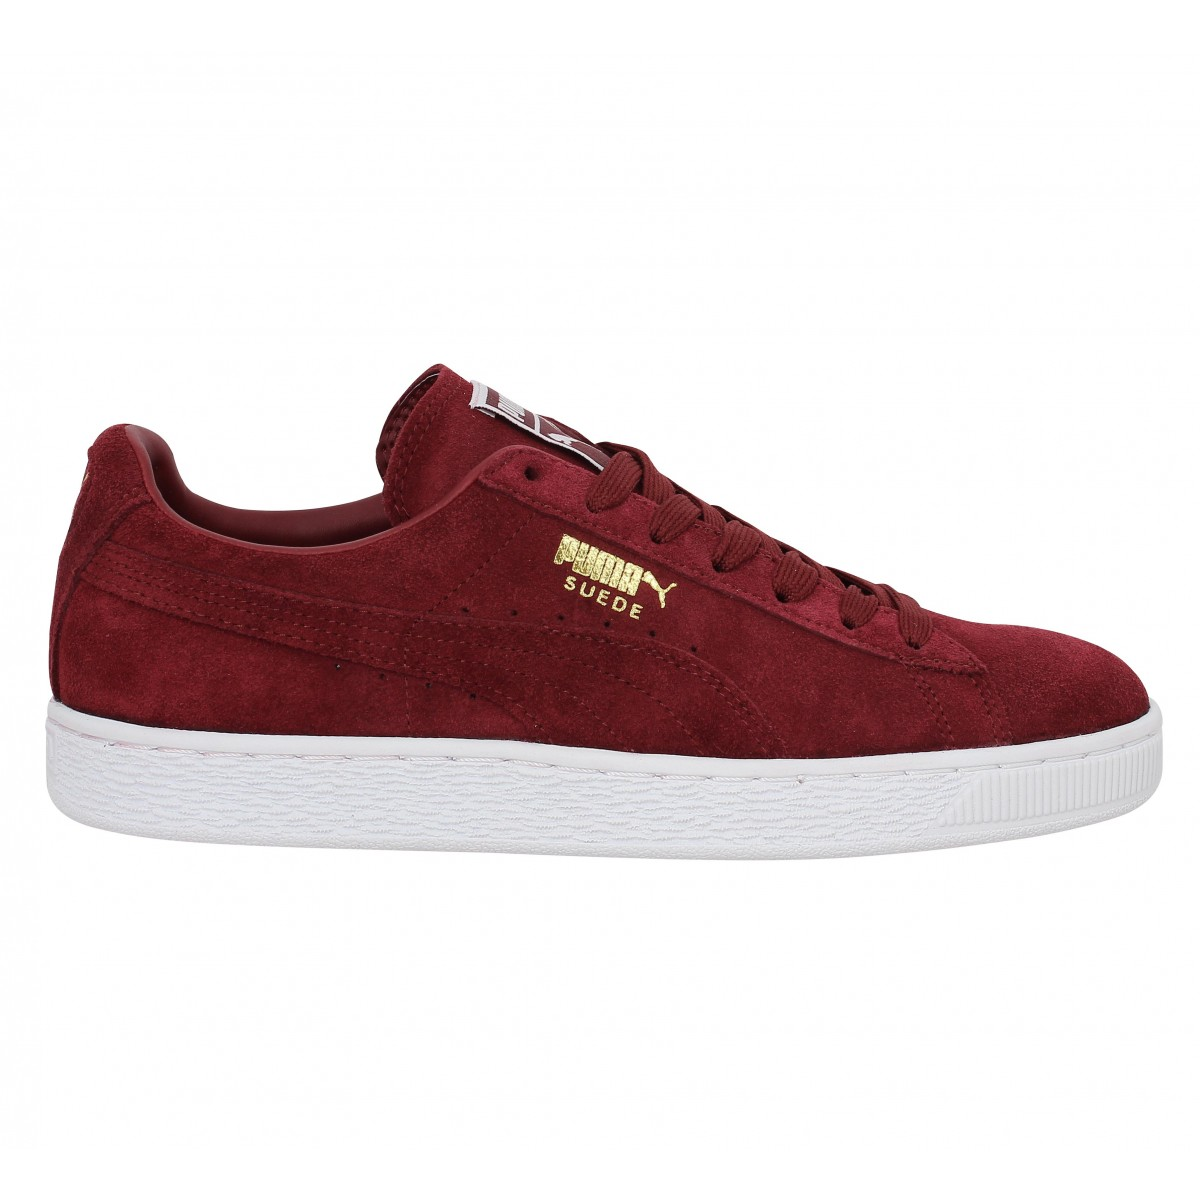 Chaussures Puma Suede noires Casual femme